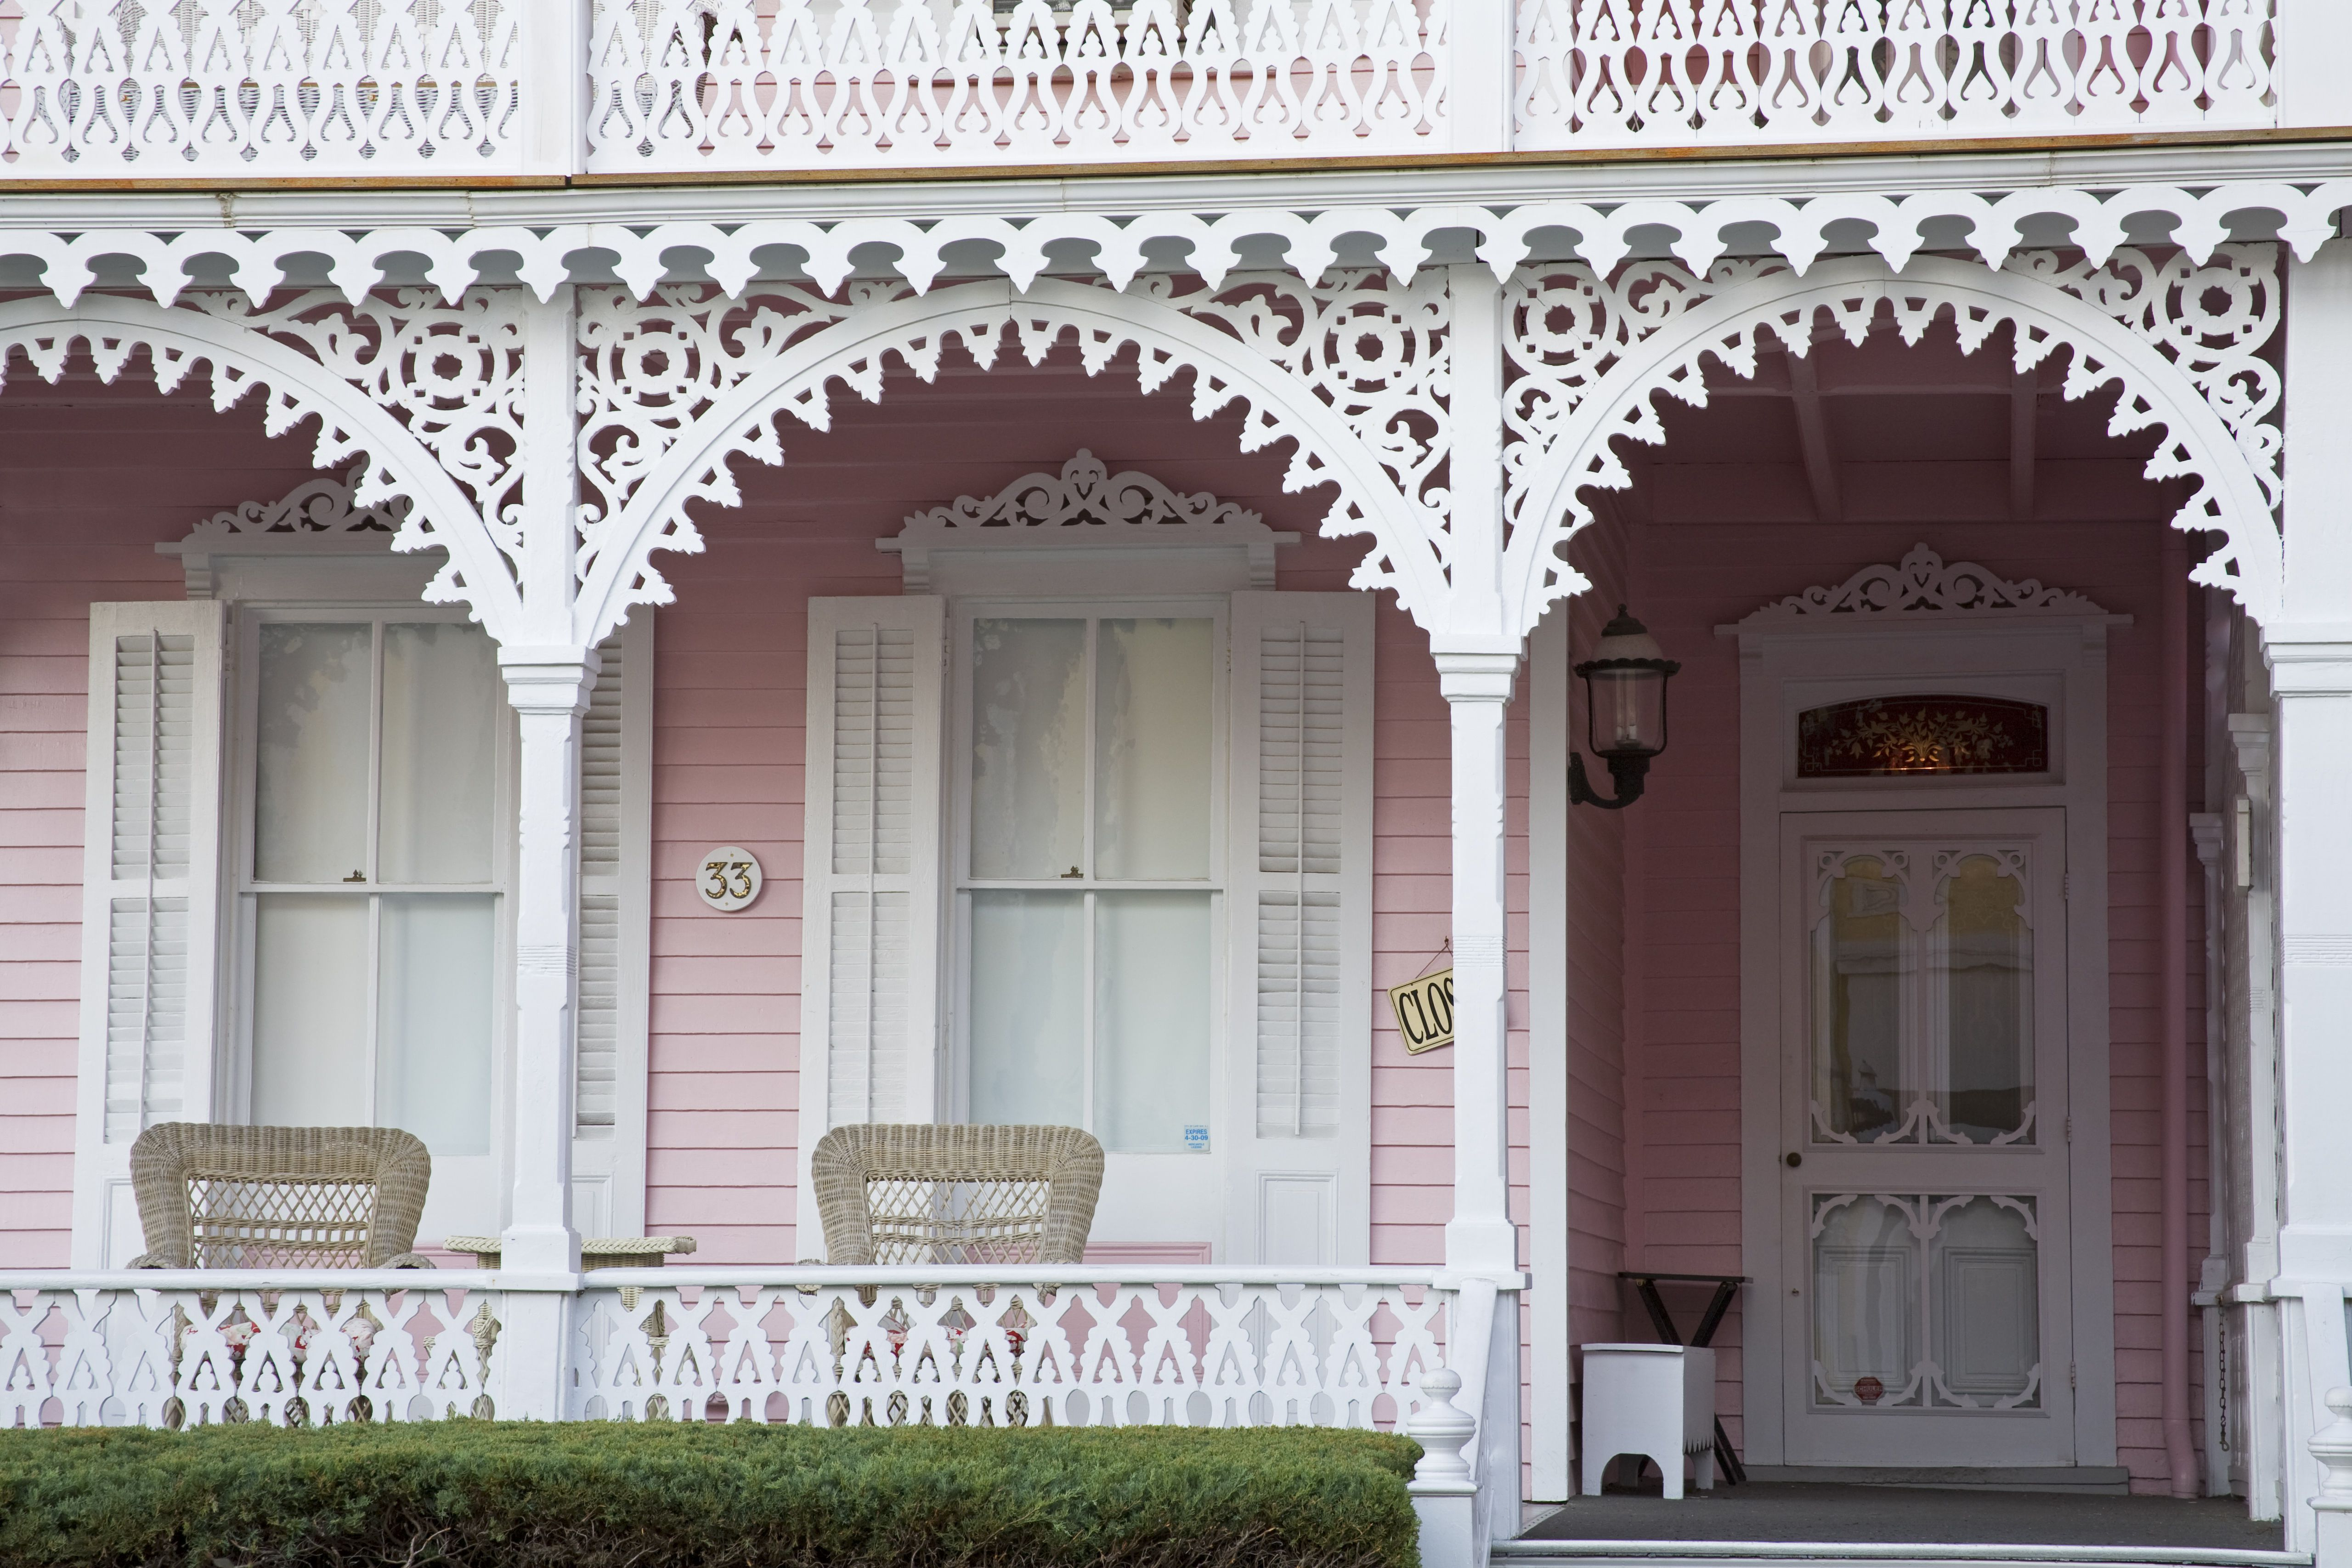 s of Homes in Shades of Pink and Red